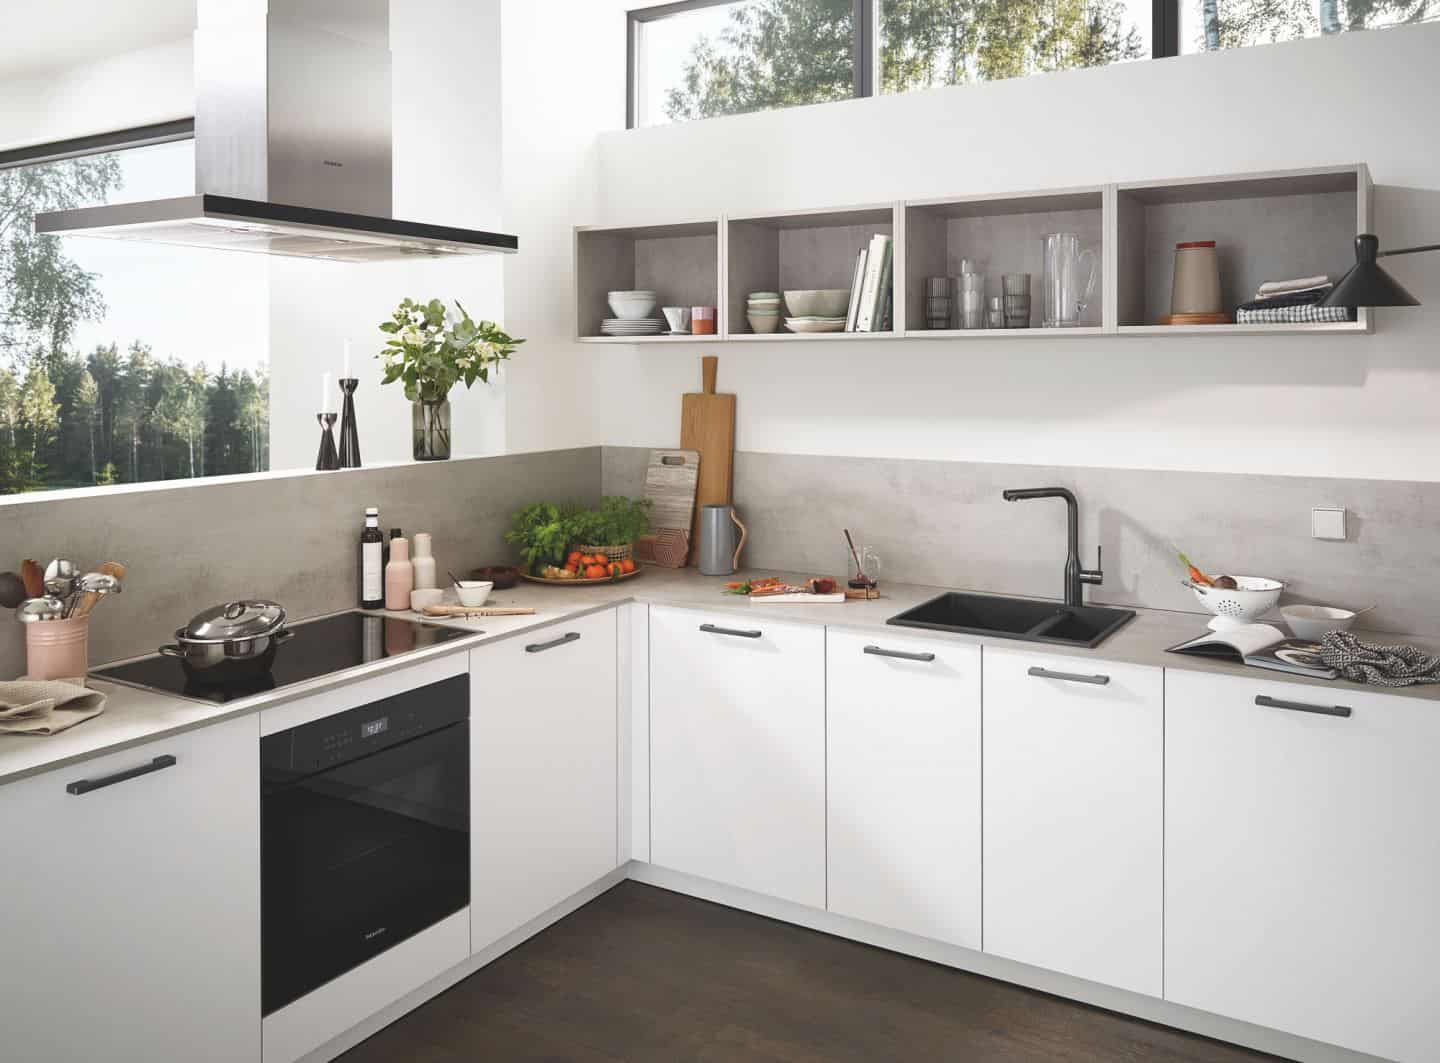 Kitchen design trends - composite sinks by Grohe